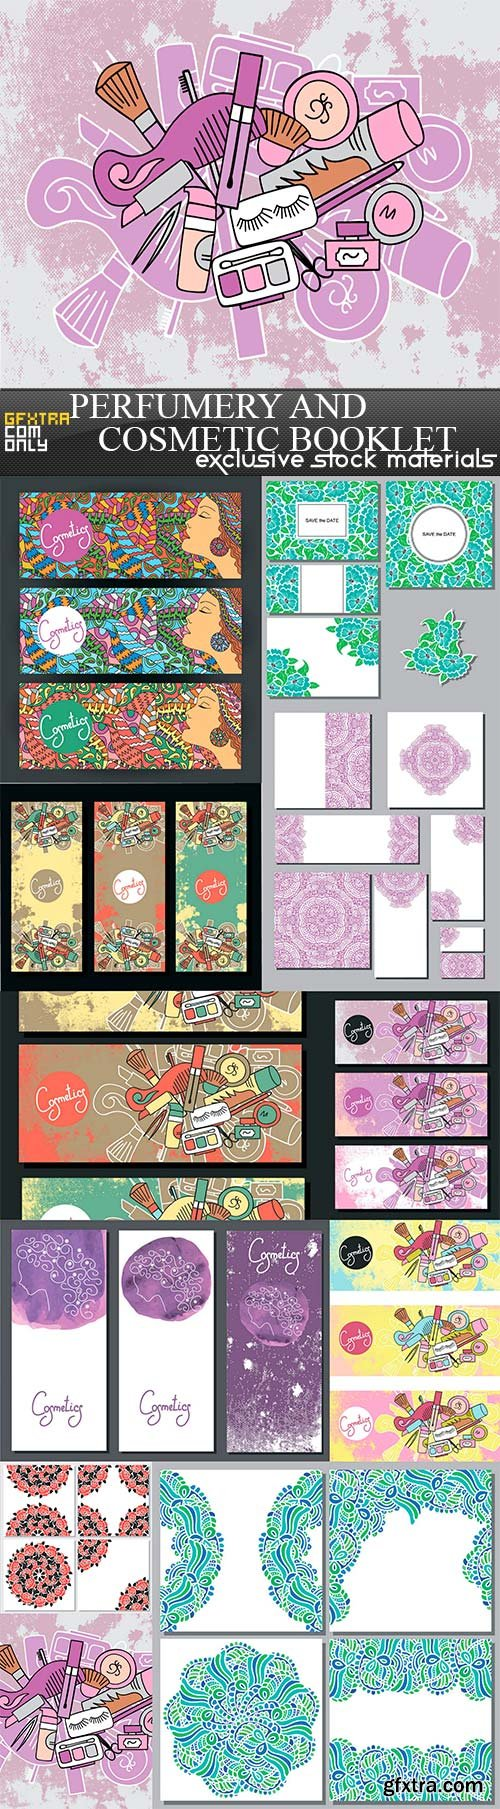 Perfumery and cosmetic booklet, 11 x EPS